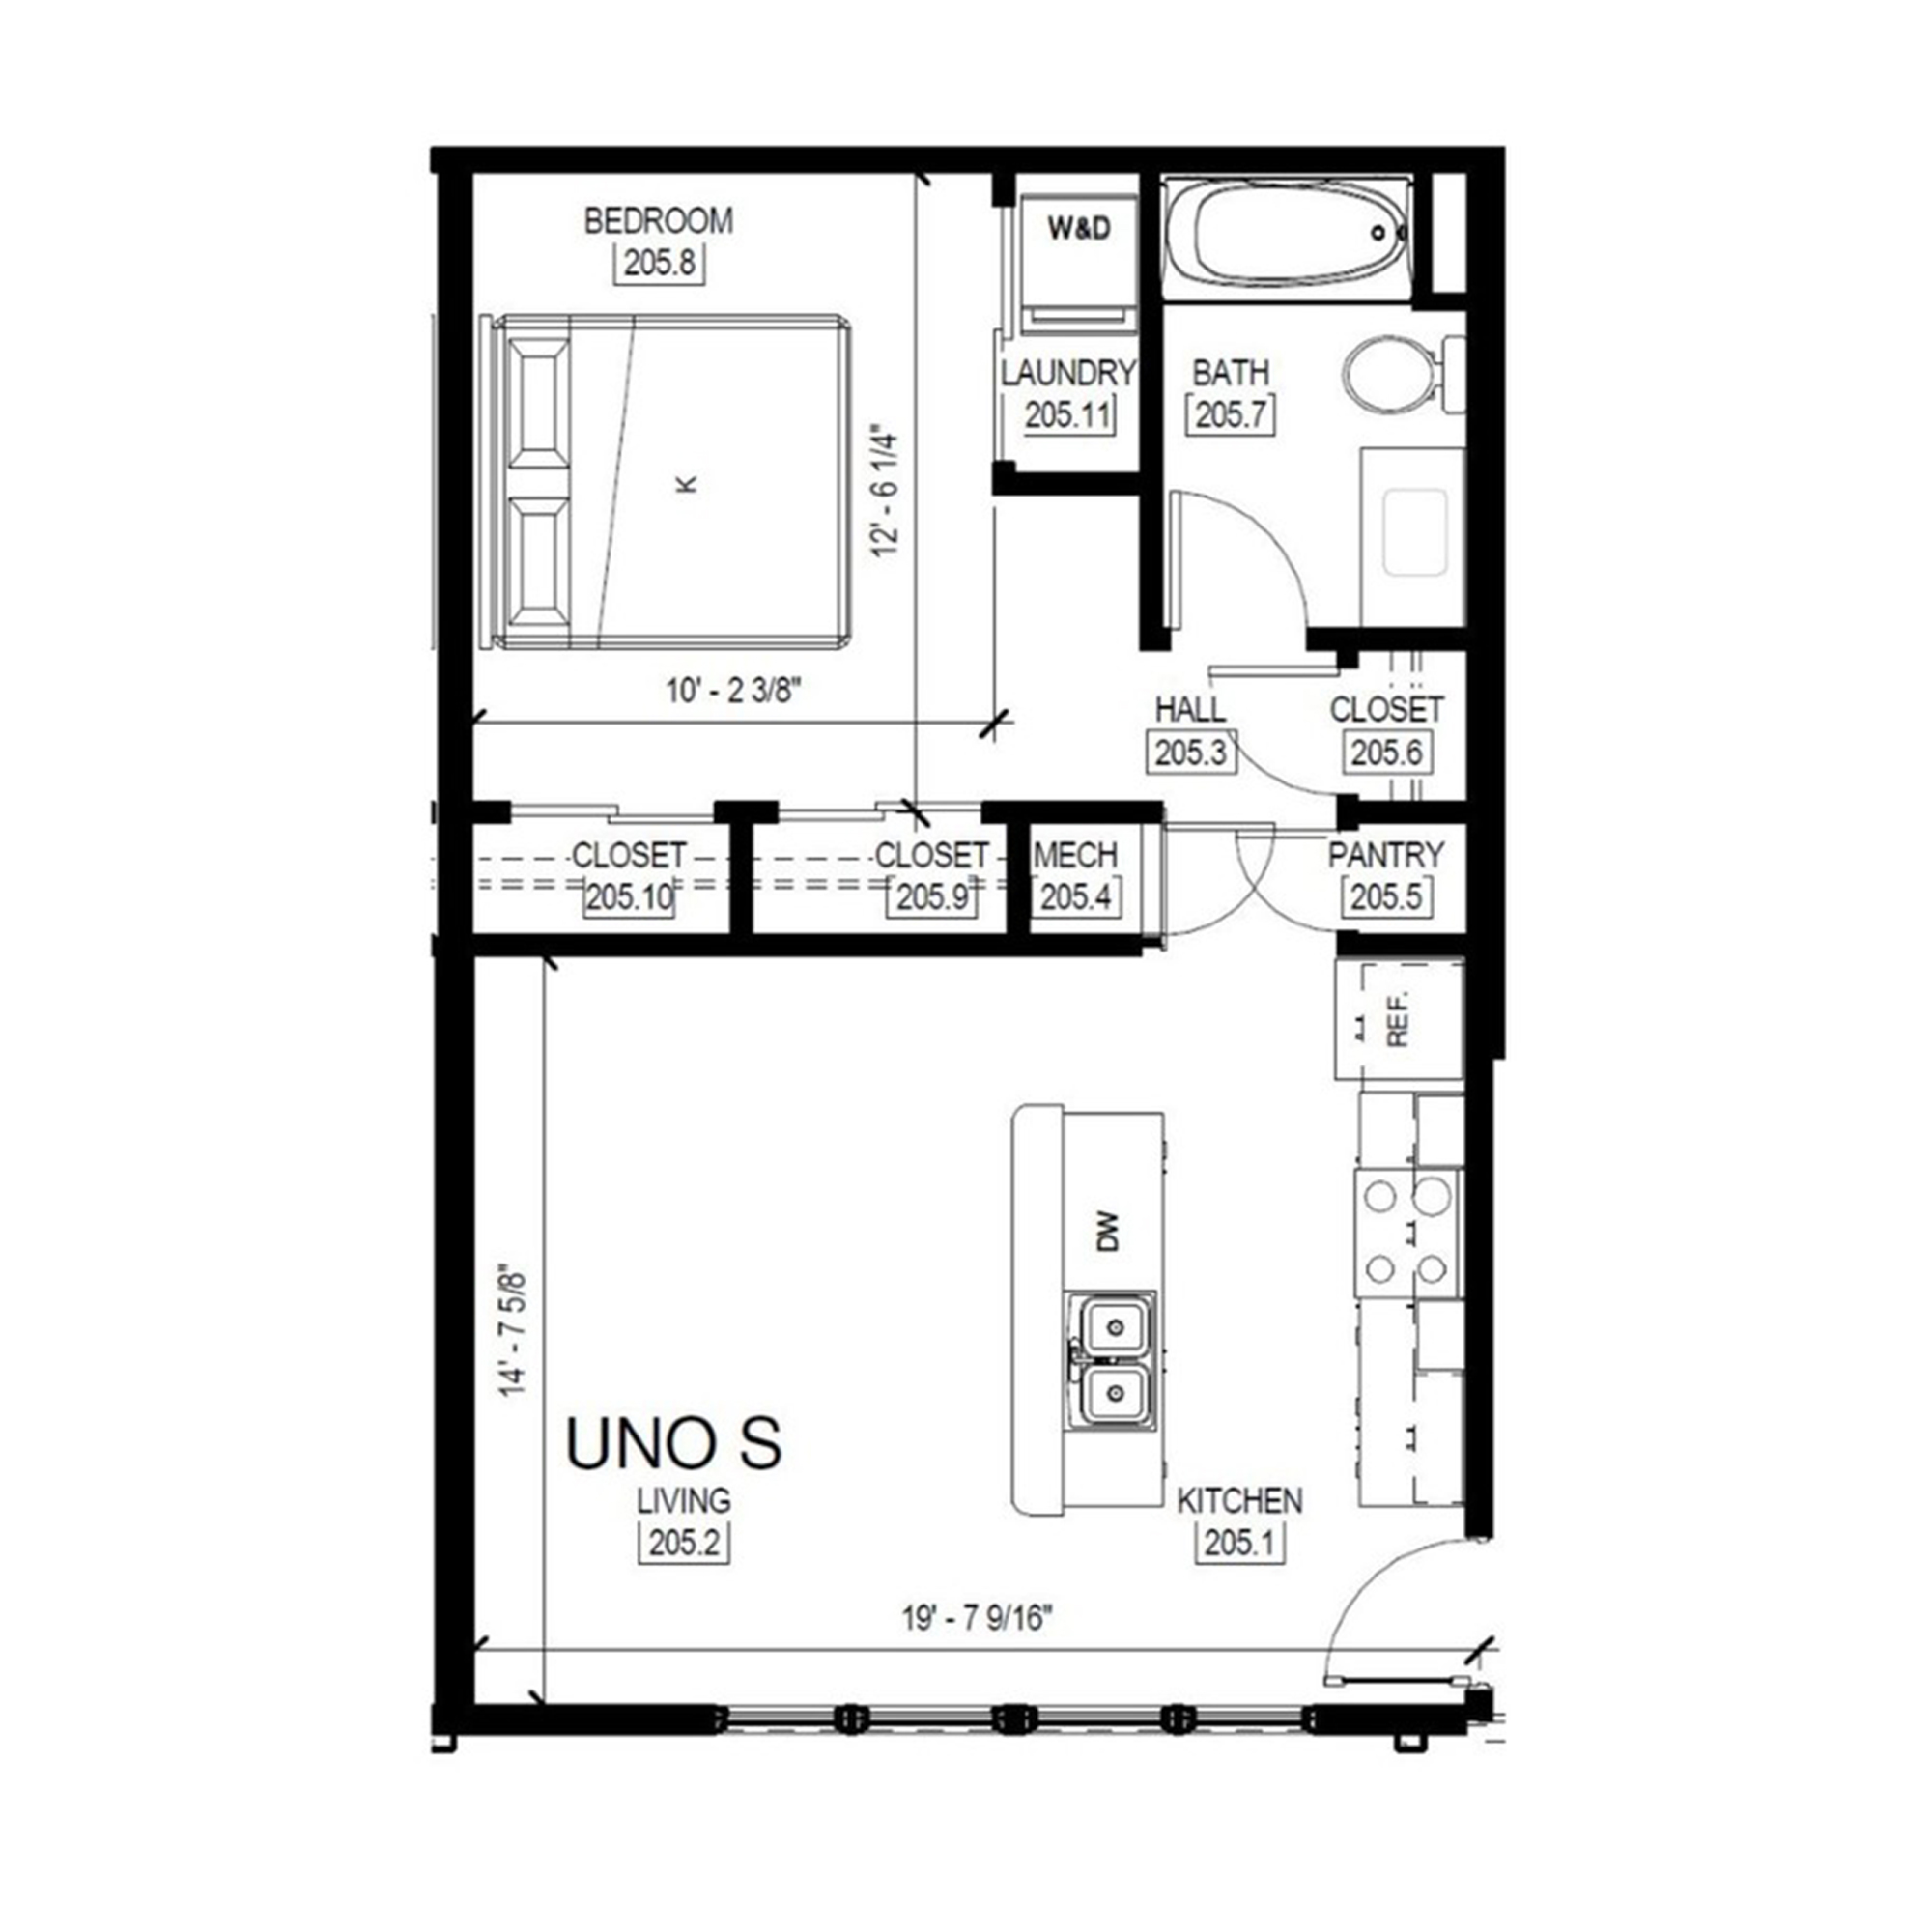 Uno S   1 Bed, 1 Bath